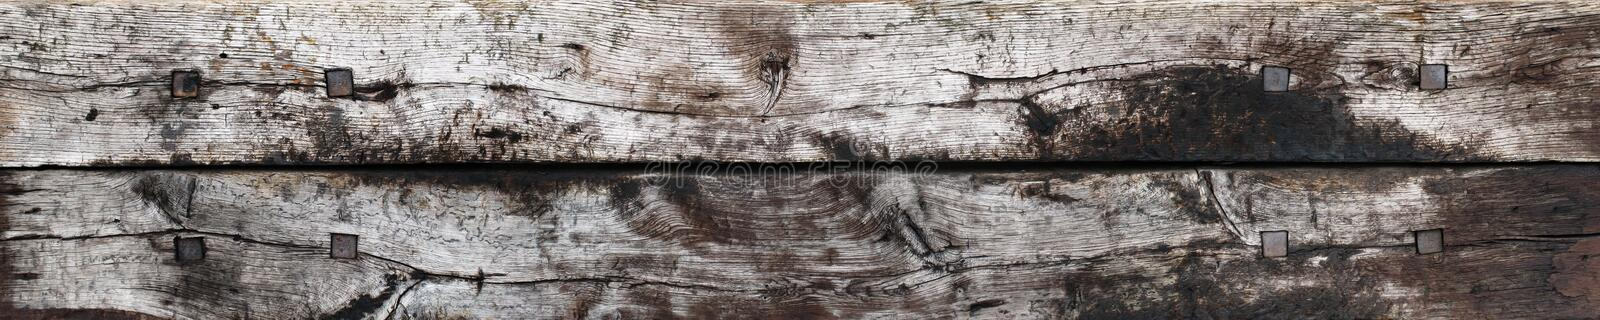 Weathered Wooden Planks Texture Royalty Free Stock Image